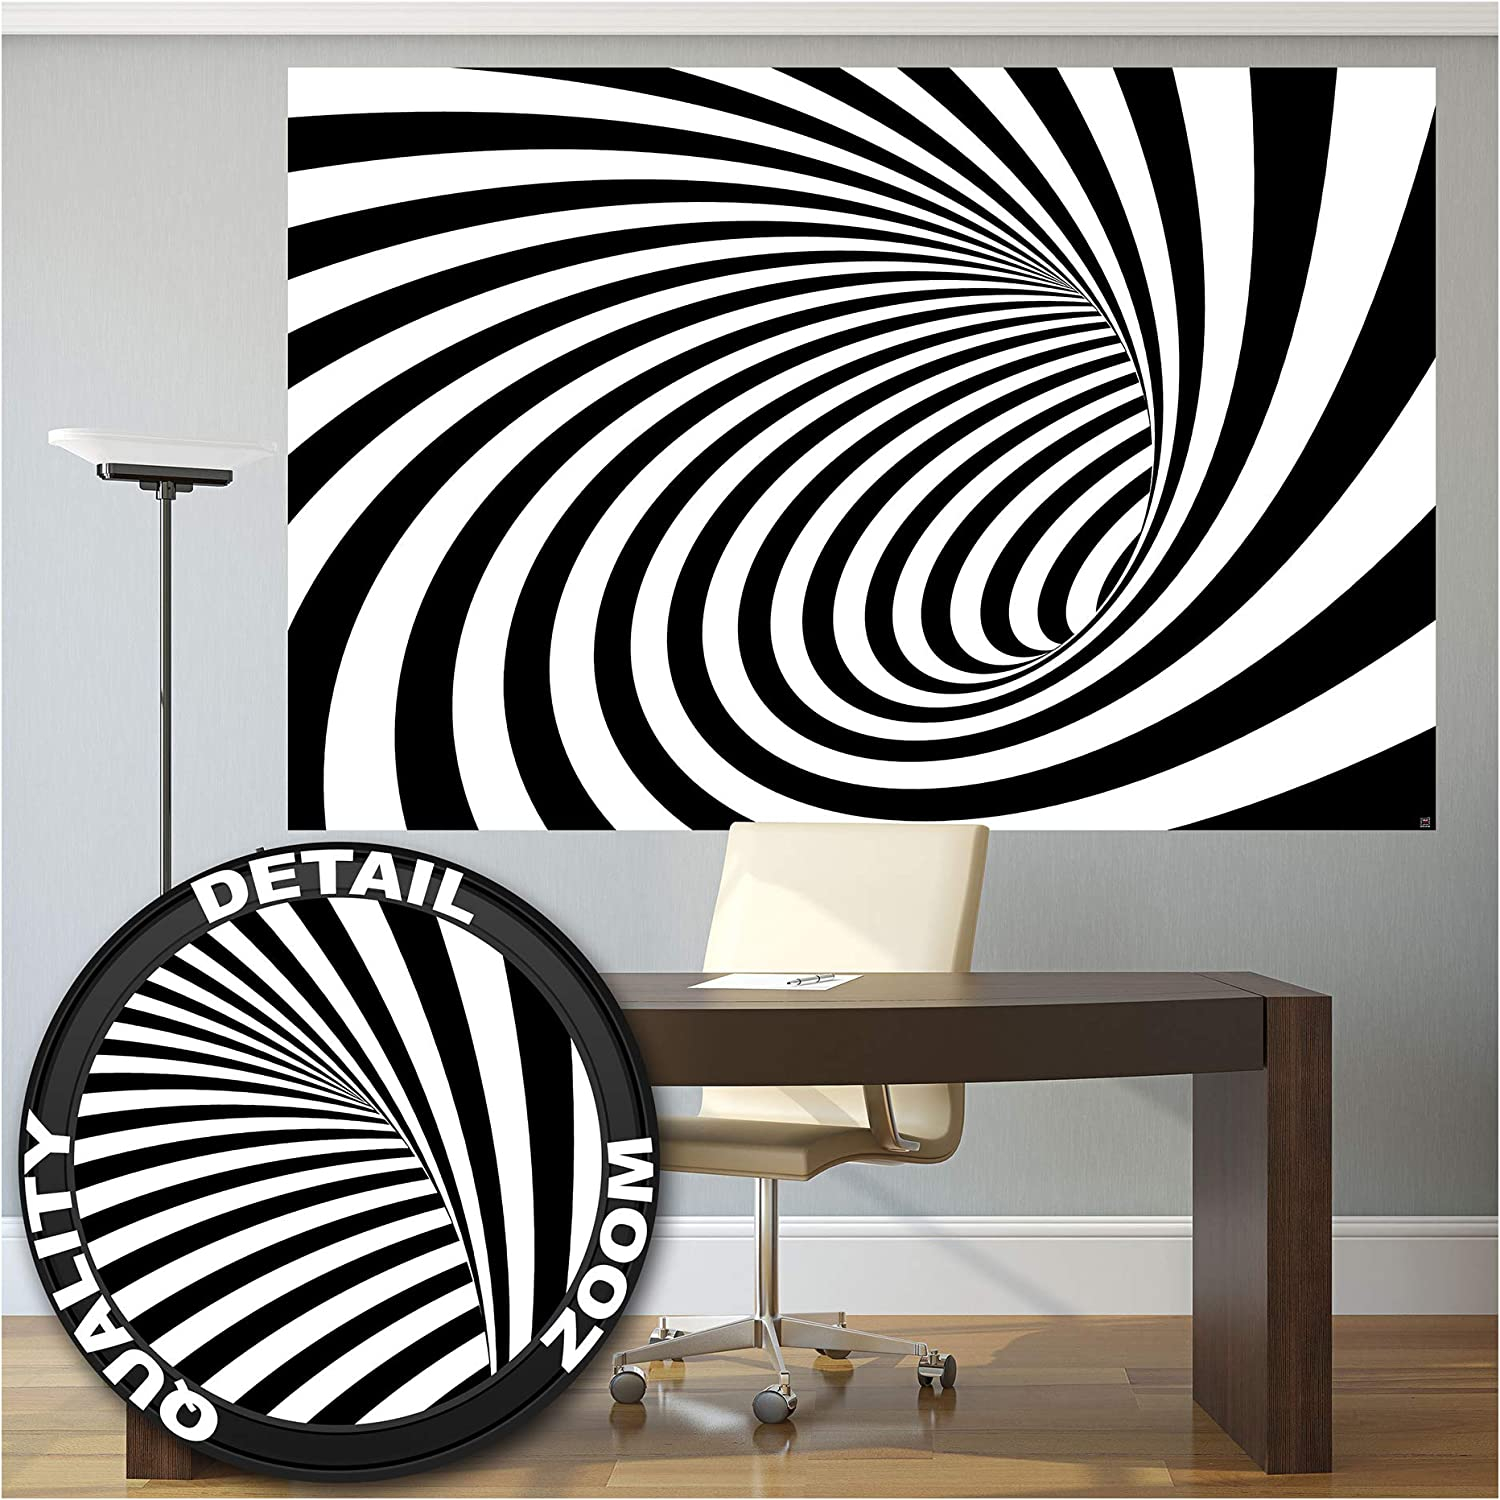 Amazon Com Great Art Photo Wallpaper 3d Black White Tunnel Picture Decoration Doppler Effect Modern Design Abstract Spiral Stripes Tunnel Graphic Image Decor Wall Mural 82 7x55 1in 210x140cm Posters